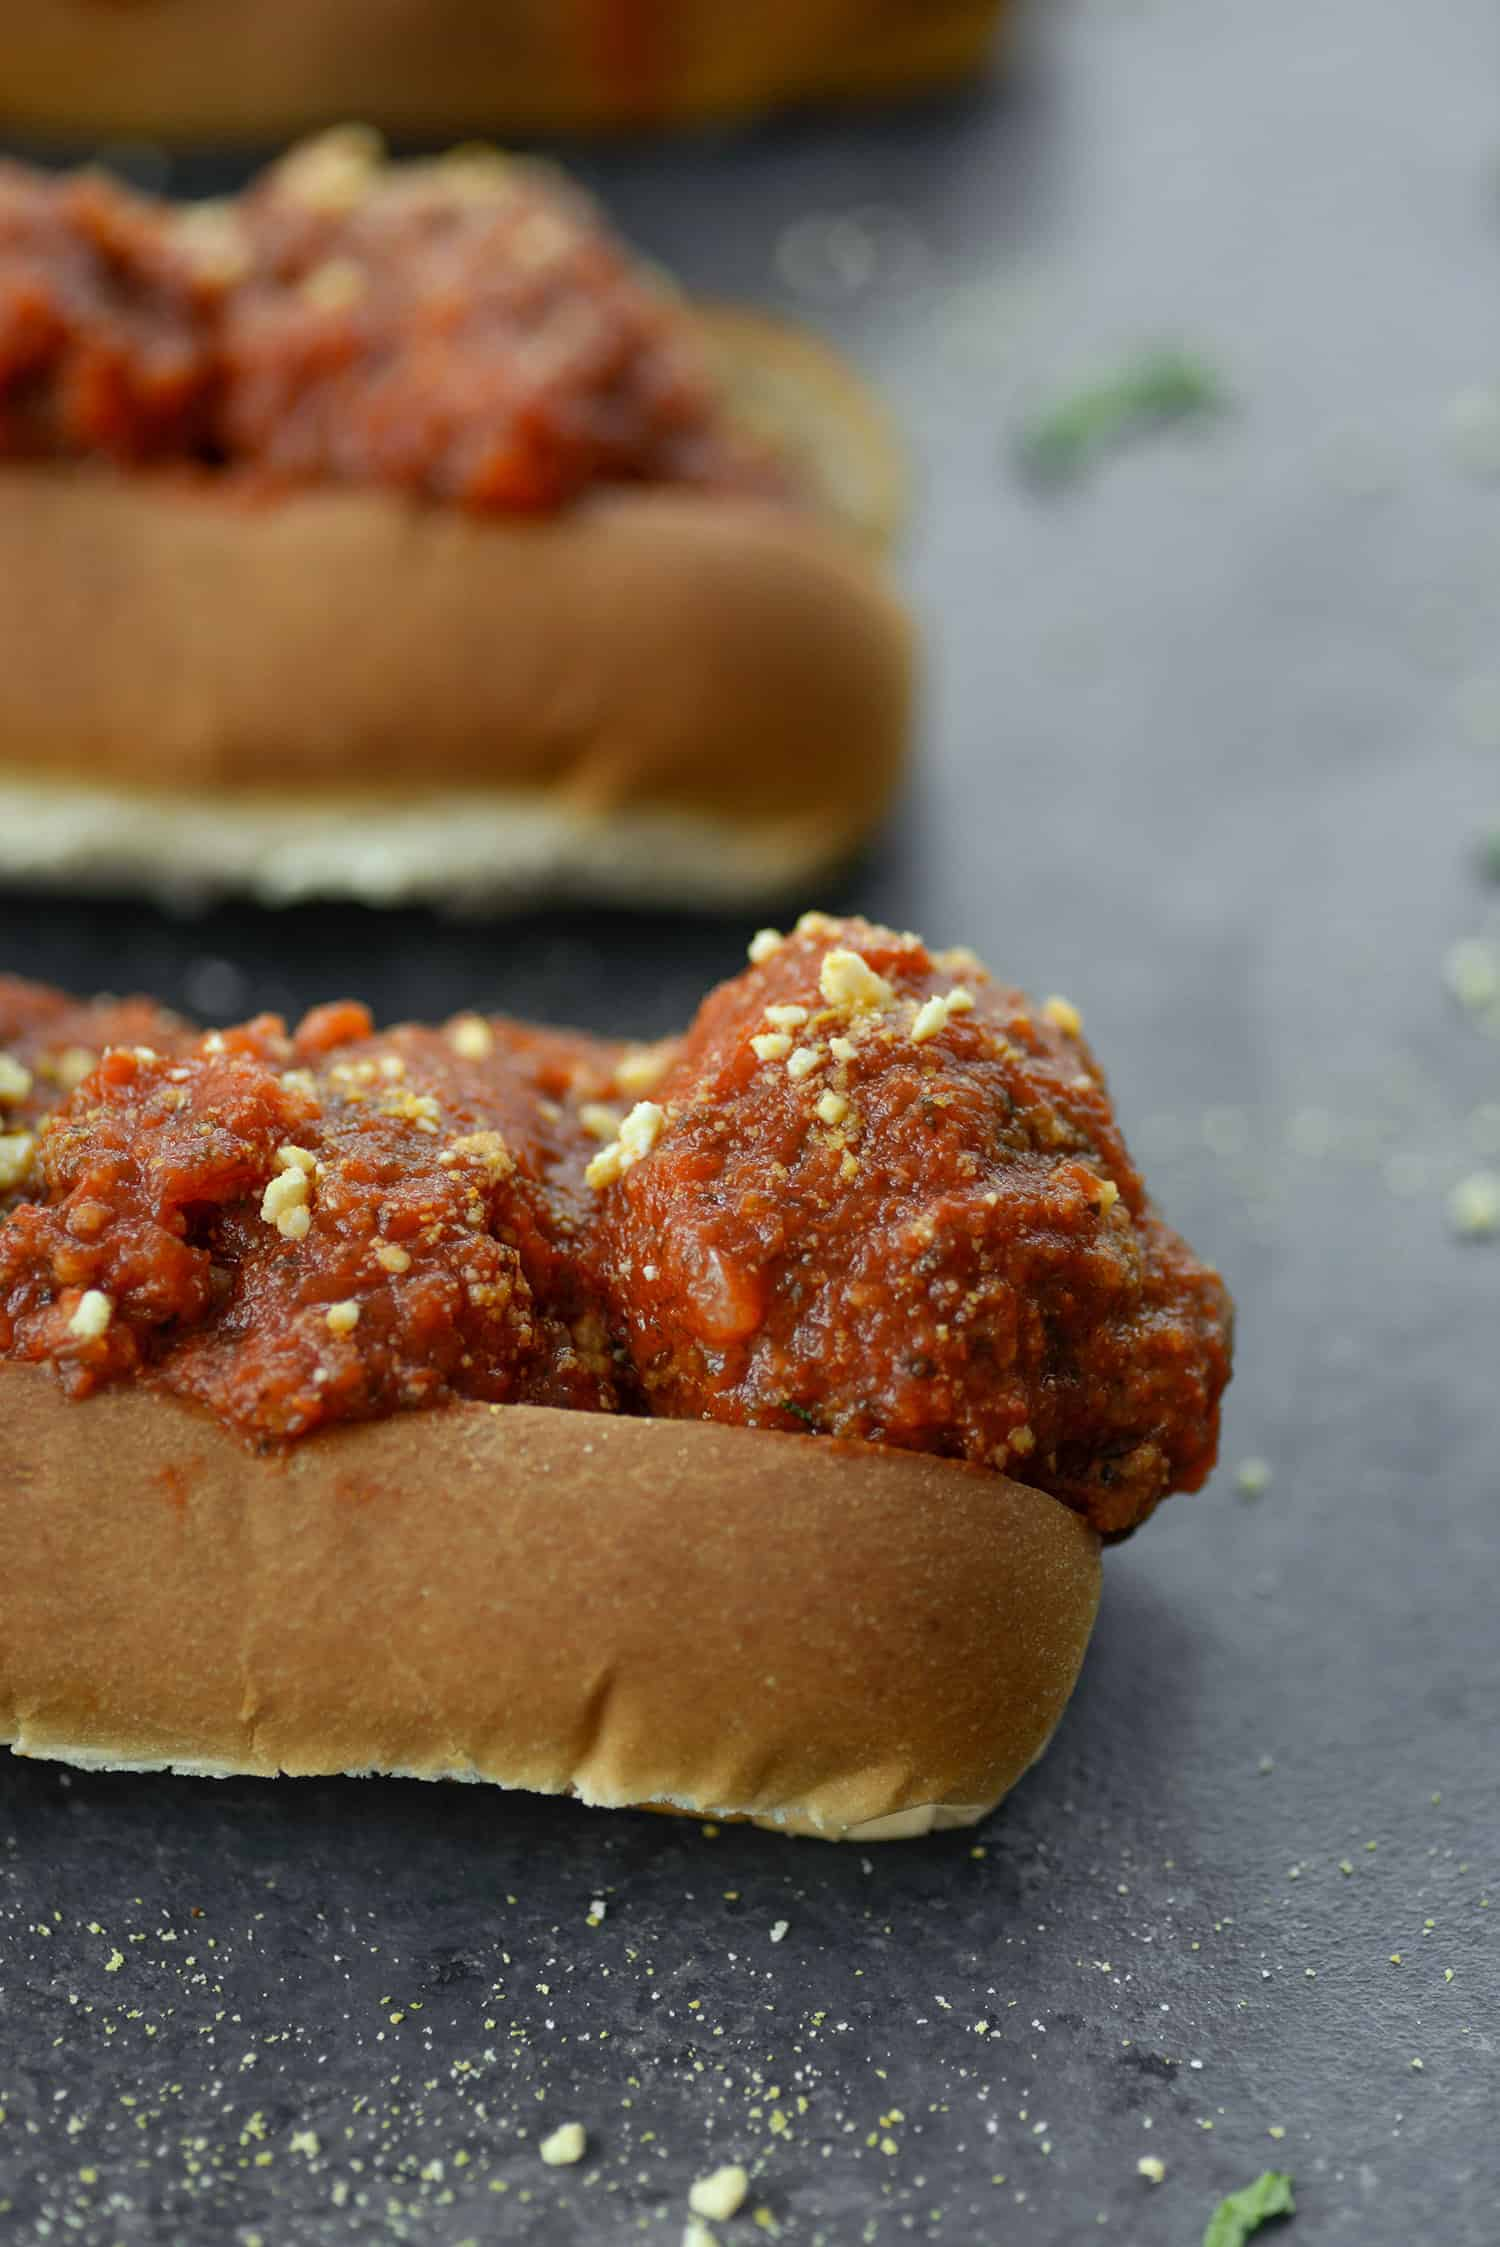 Vegan Meatball Sandwiches! If you love meatball sandwiches, then you've gotta try this vegan version. Chickpea meatballs smothered in marinara sauce and homemade vegan parmesan. Meatballs freeze well! | www.delishknowledge.com